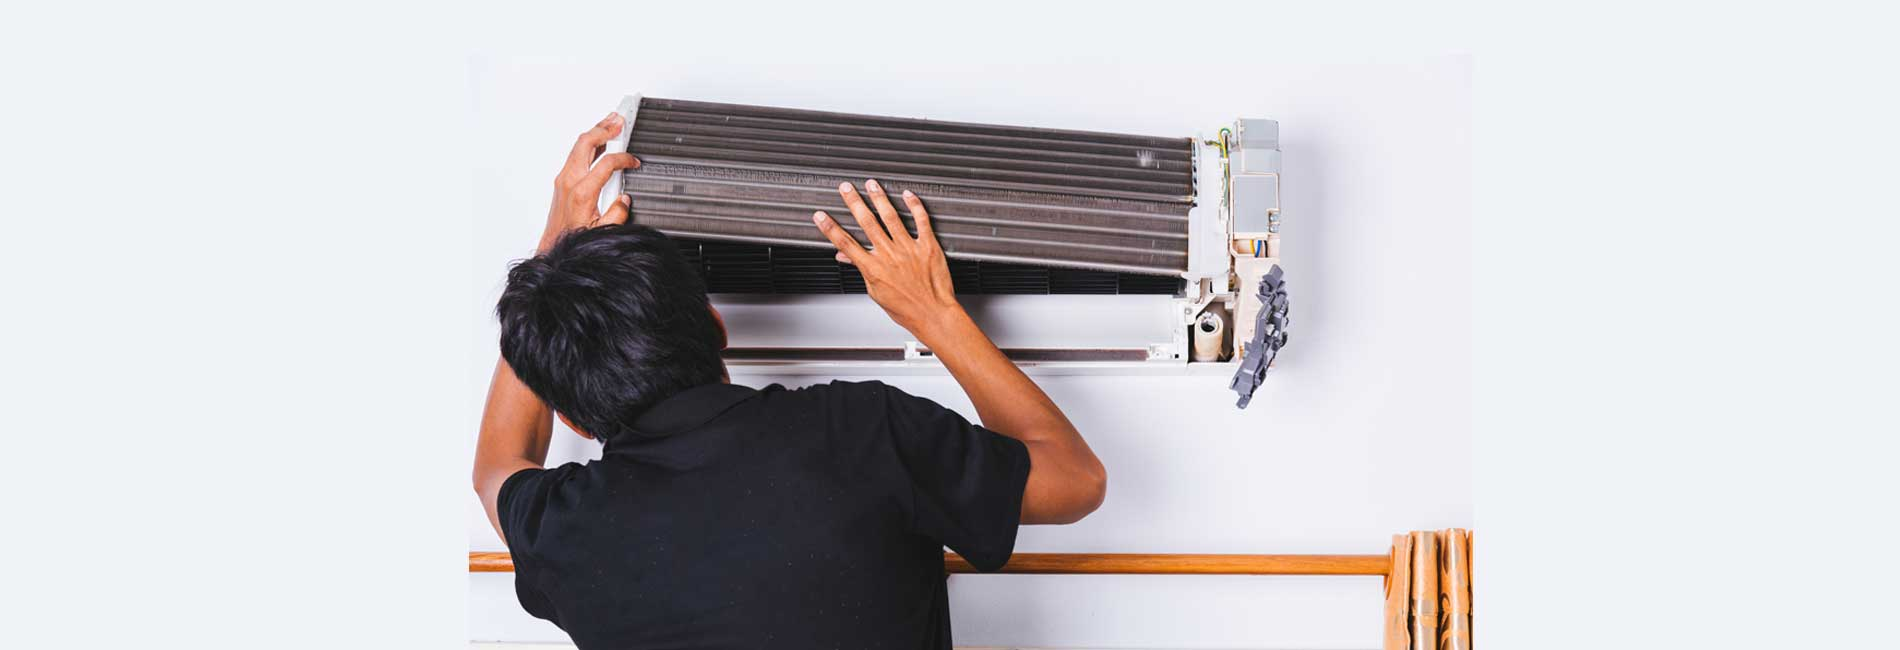 Bluestar Air Conditioner Service in Fort St. George